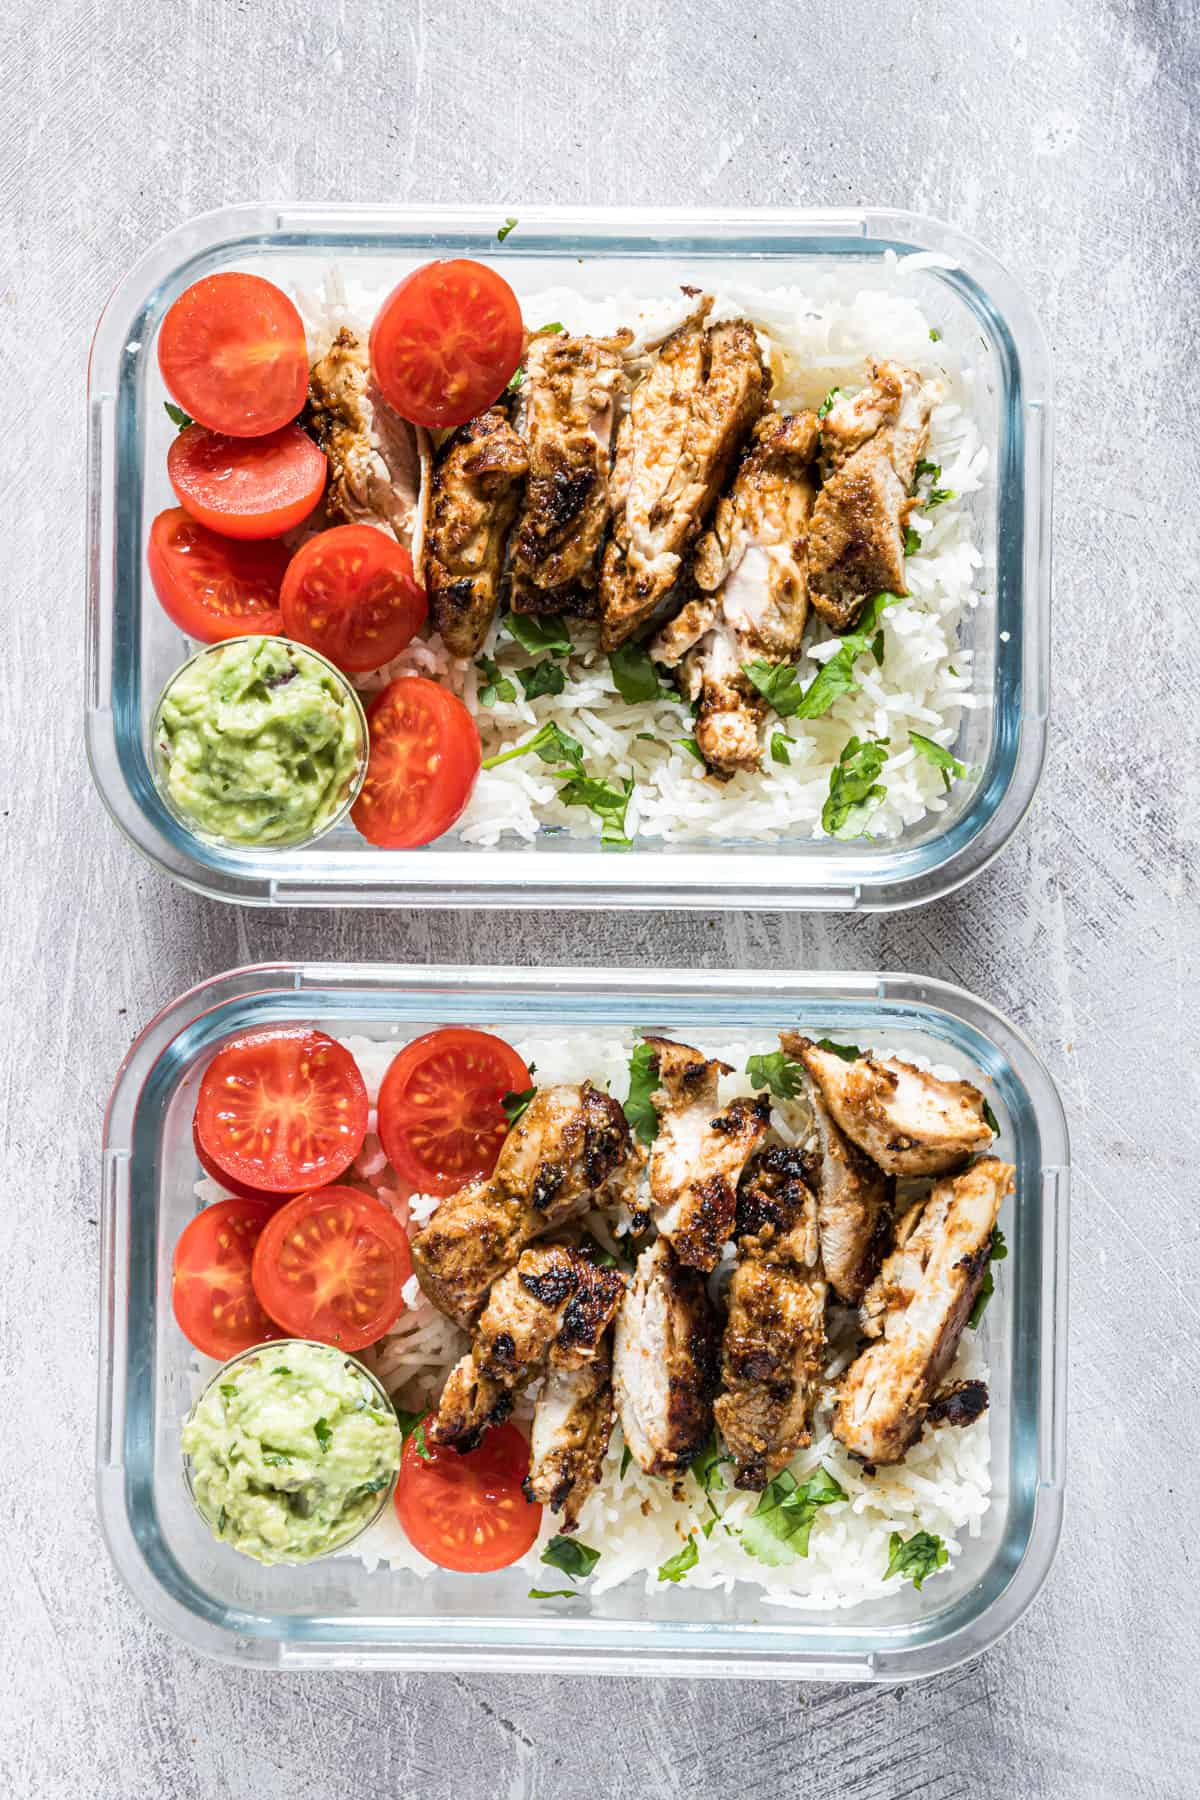 top down view of two completed meal prep chicken and rice servings